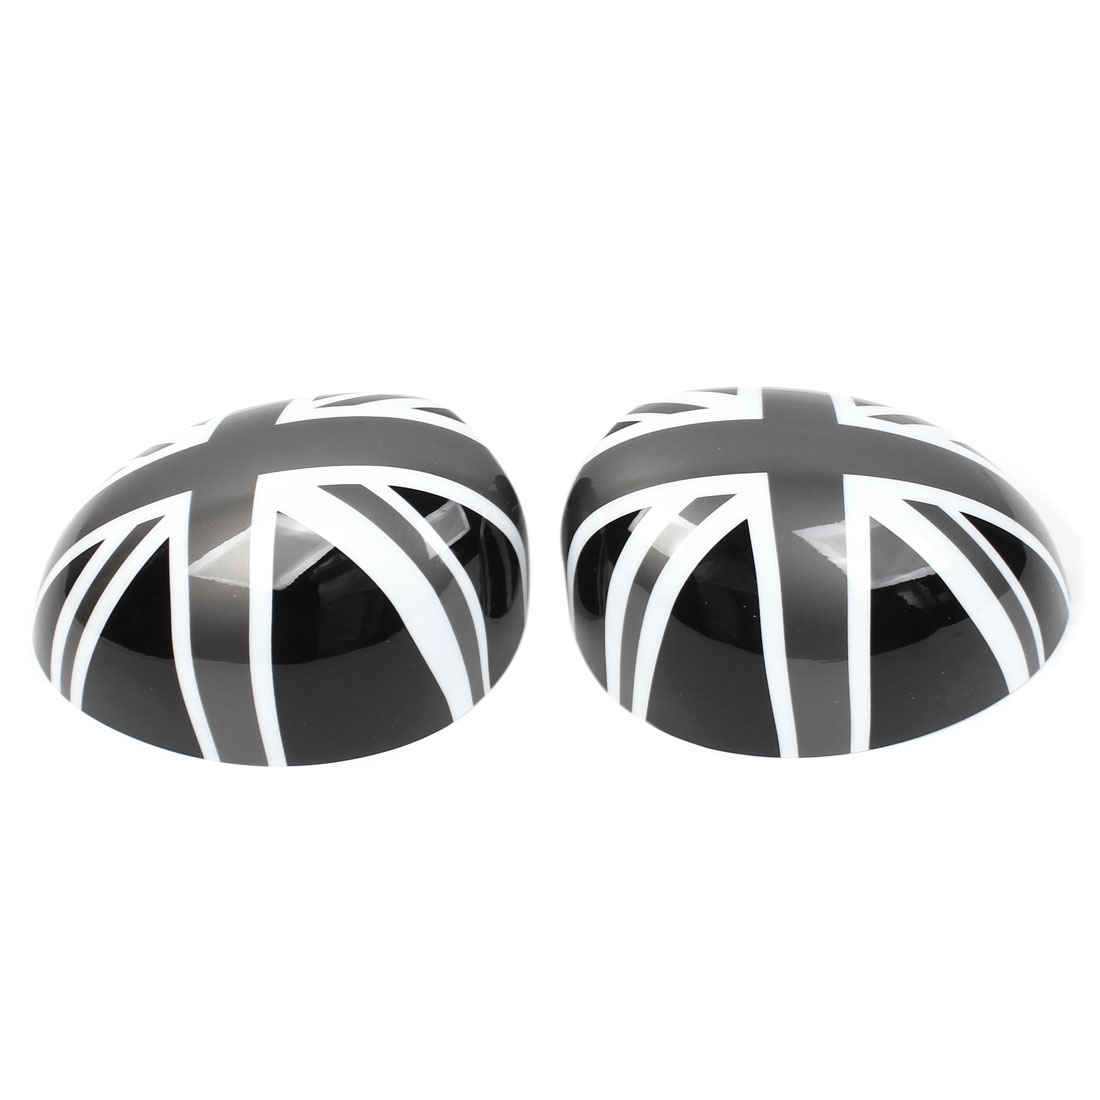 Pair Black White Union Flag Side Rear View Mirror Caps Trim Cover for BMW MINI